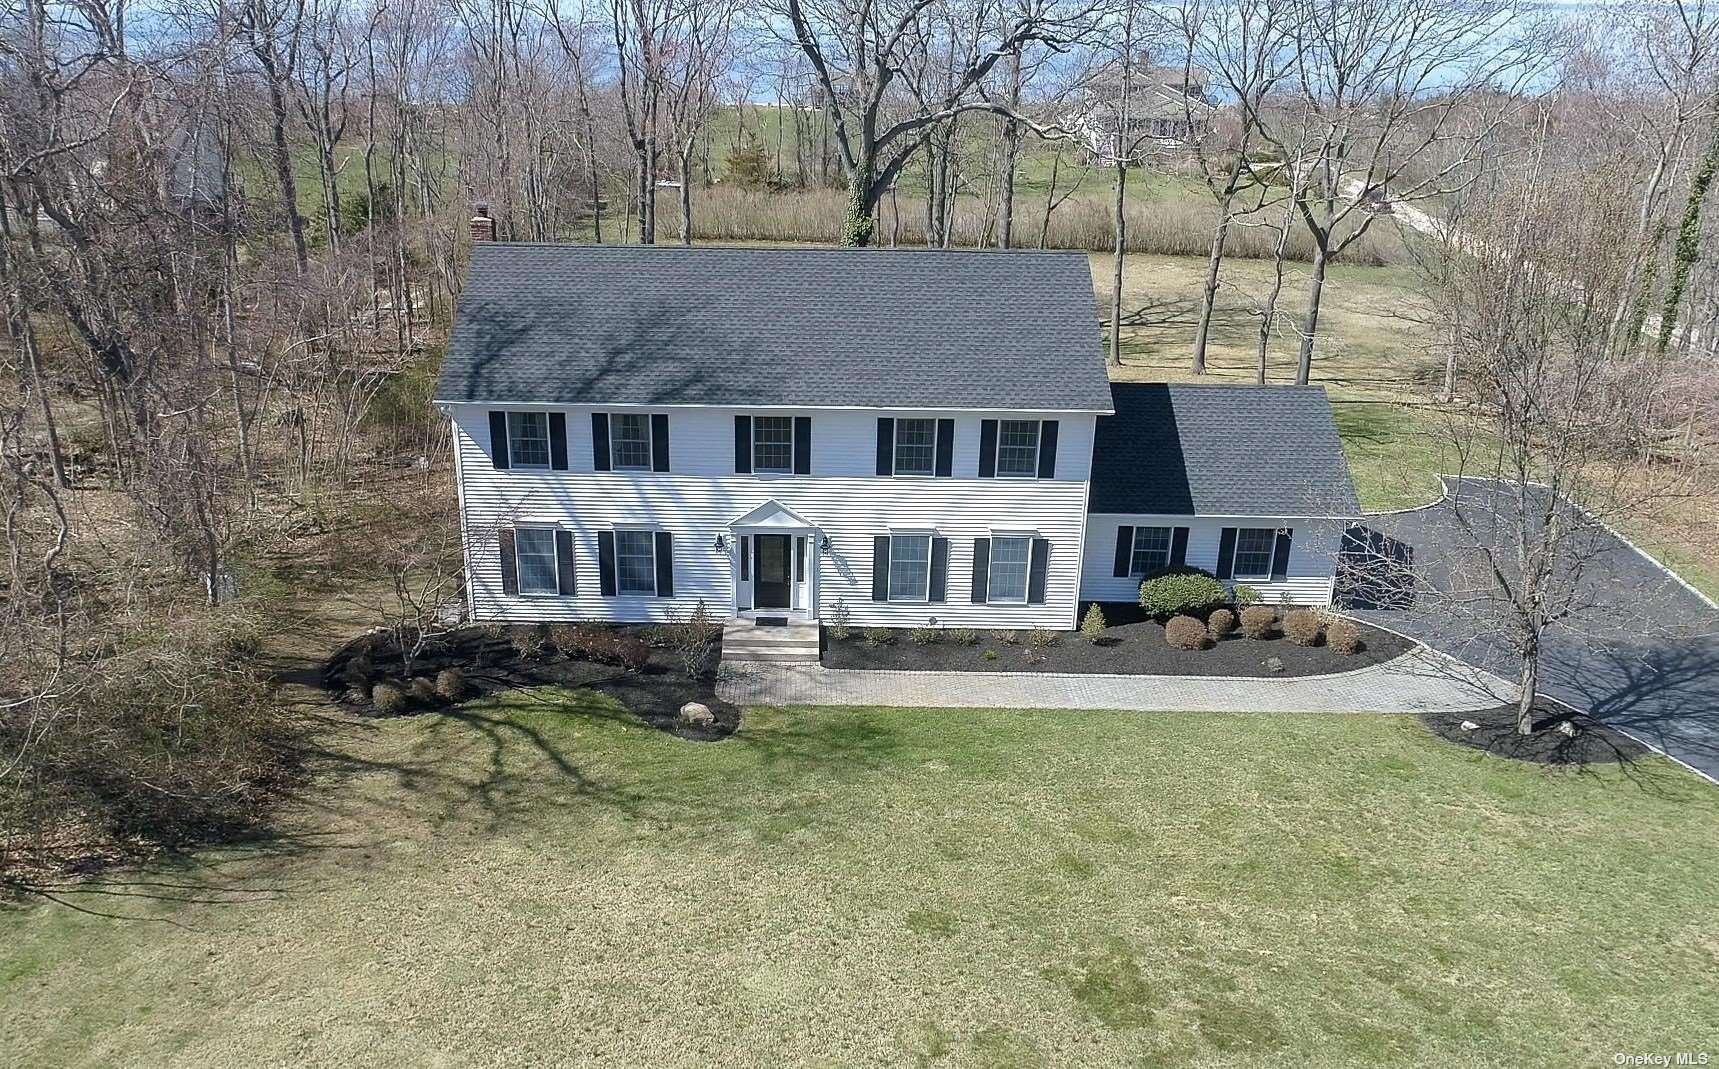 """What A View!!! Rare Opportunity To Own This Beautifully Updated 4 Bedroom Colonial With Magnificent Views Of The Long Island Sound With Deeded Beach Access, Walking Easement and 30' Of Your Own Private Beach. Tucked Away On 2 Acres At The End Of A Cul-De-Sac In The Village Of Old Field, This Very Special Home Boasts 2 Story Entry Foyer, New Custom Kitchen With 48"""" Thermador Range & Center Island Open To Den With Gas Fireplace & Sliders To Deck, Hardwood Floors Throughout, Andersen Windows, CAC, Grand Master Suite & Much More. Make This Your Year Round Home, or Perfect Weekend Getaway!! Taxes With Star $29,727.83"""